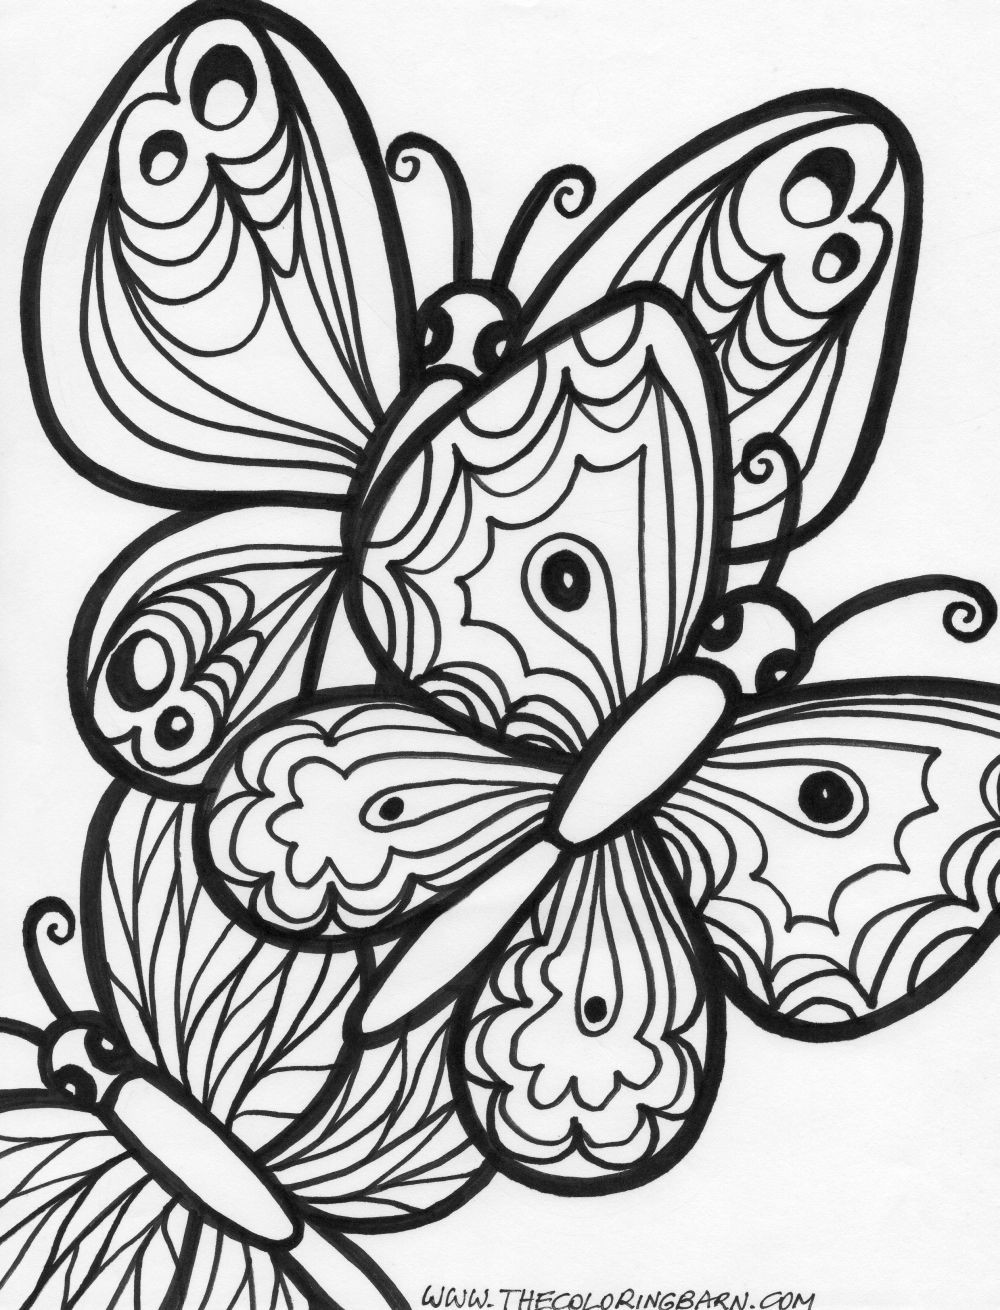 Free Coloring Pages For Adults  coloring pages for adults